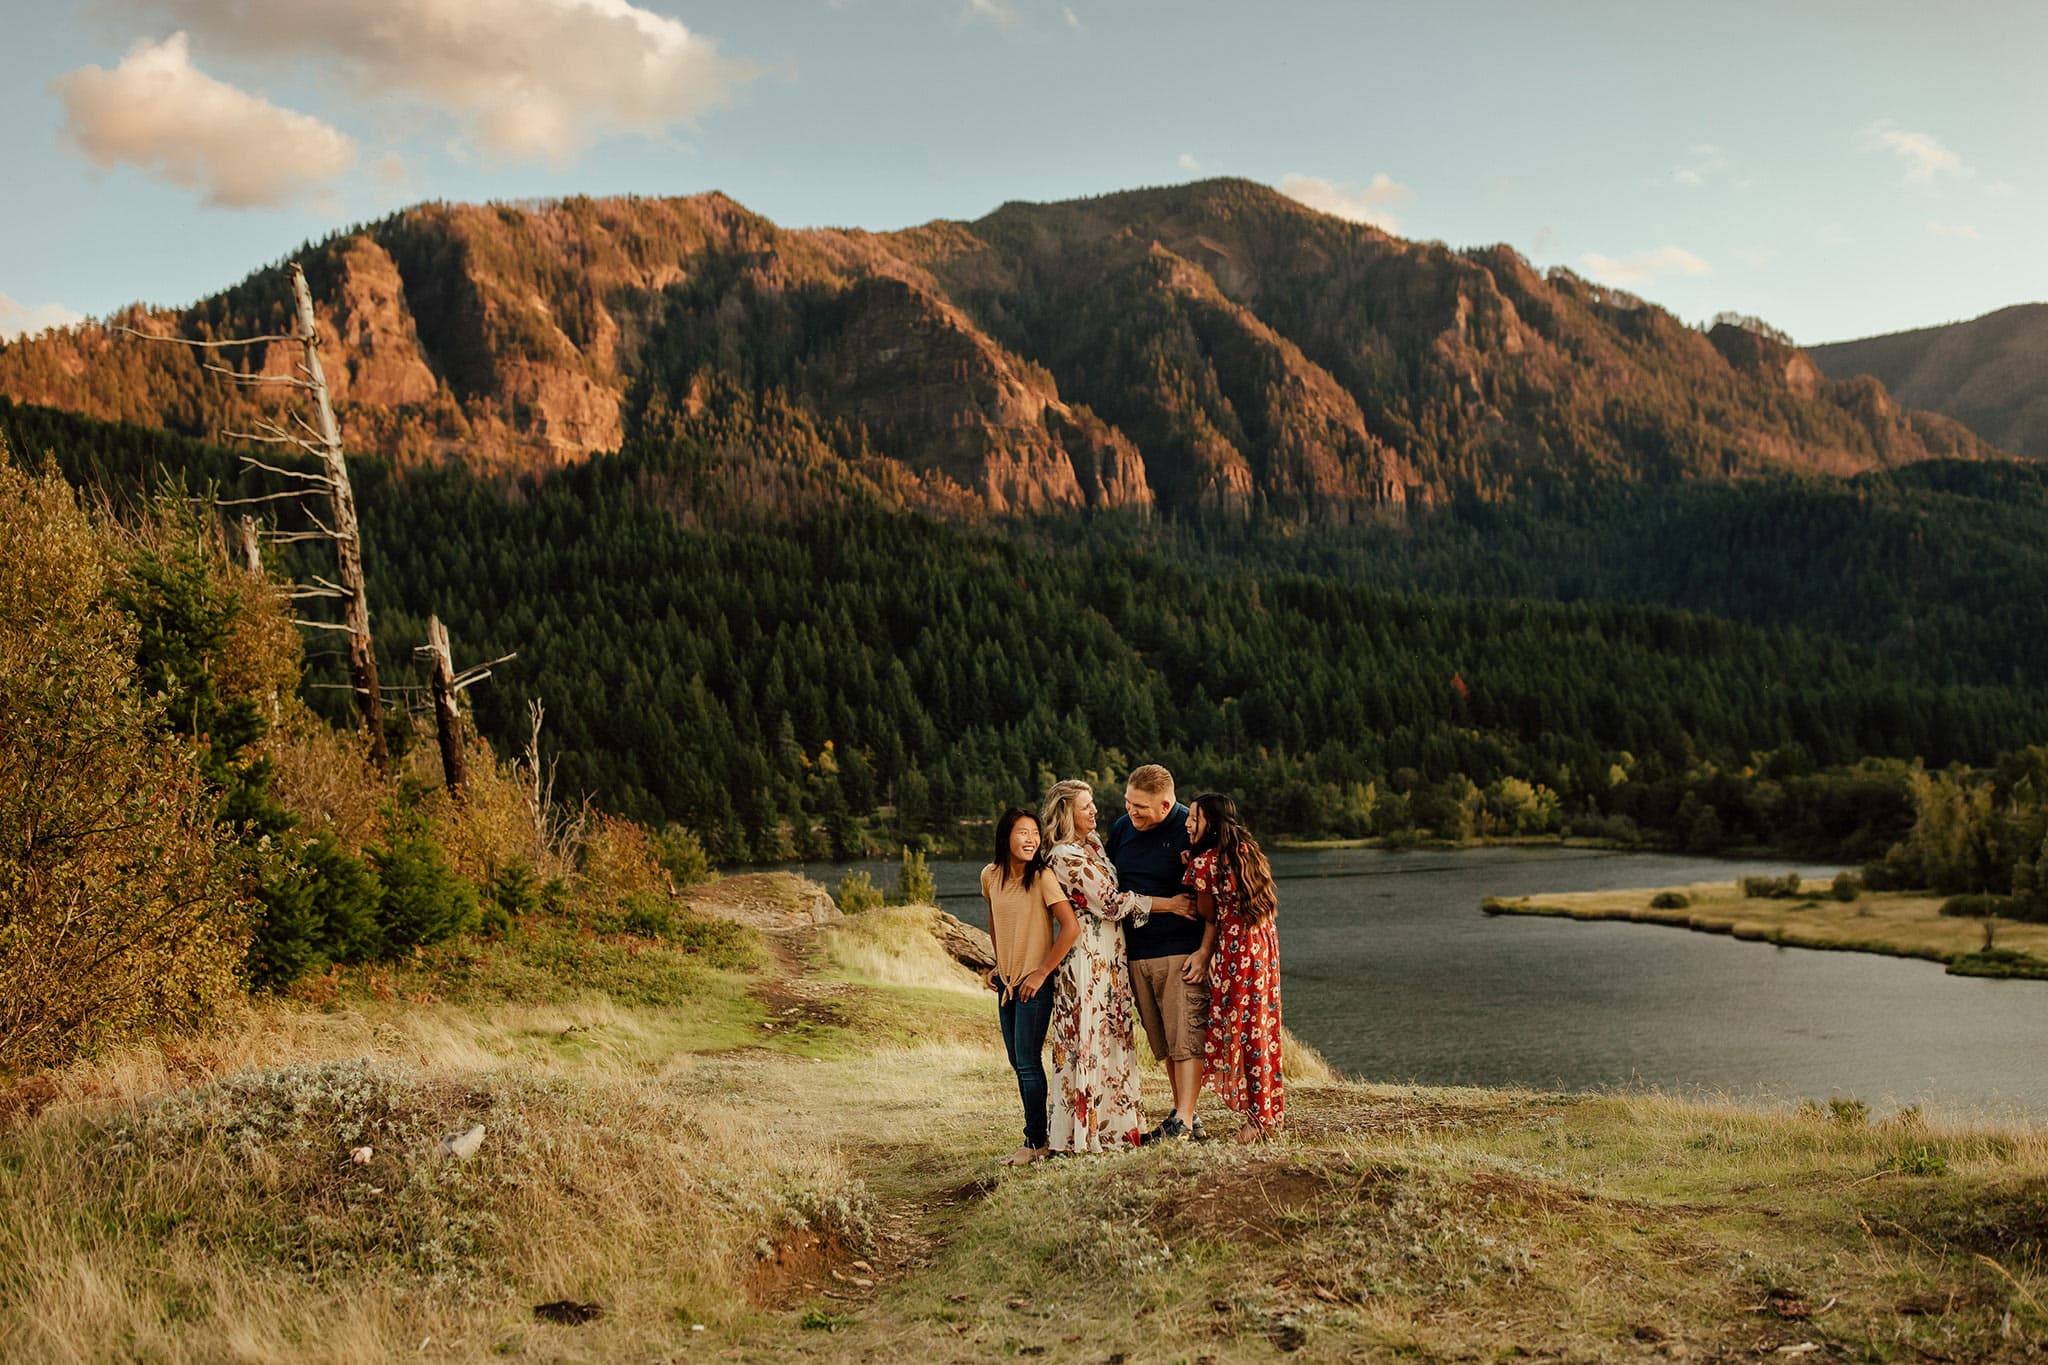 What to wear for family photos - family standing by a mountain